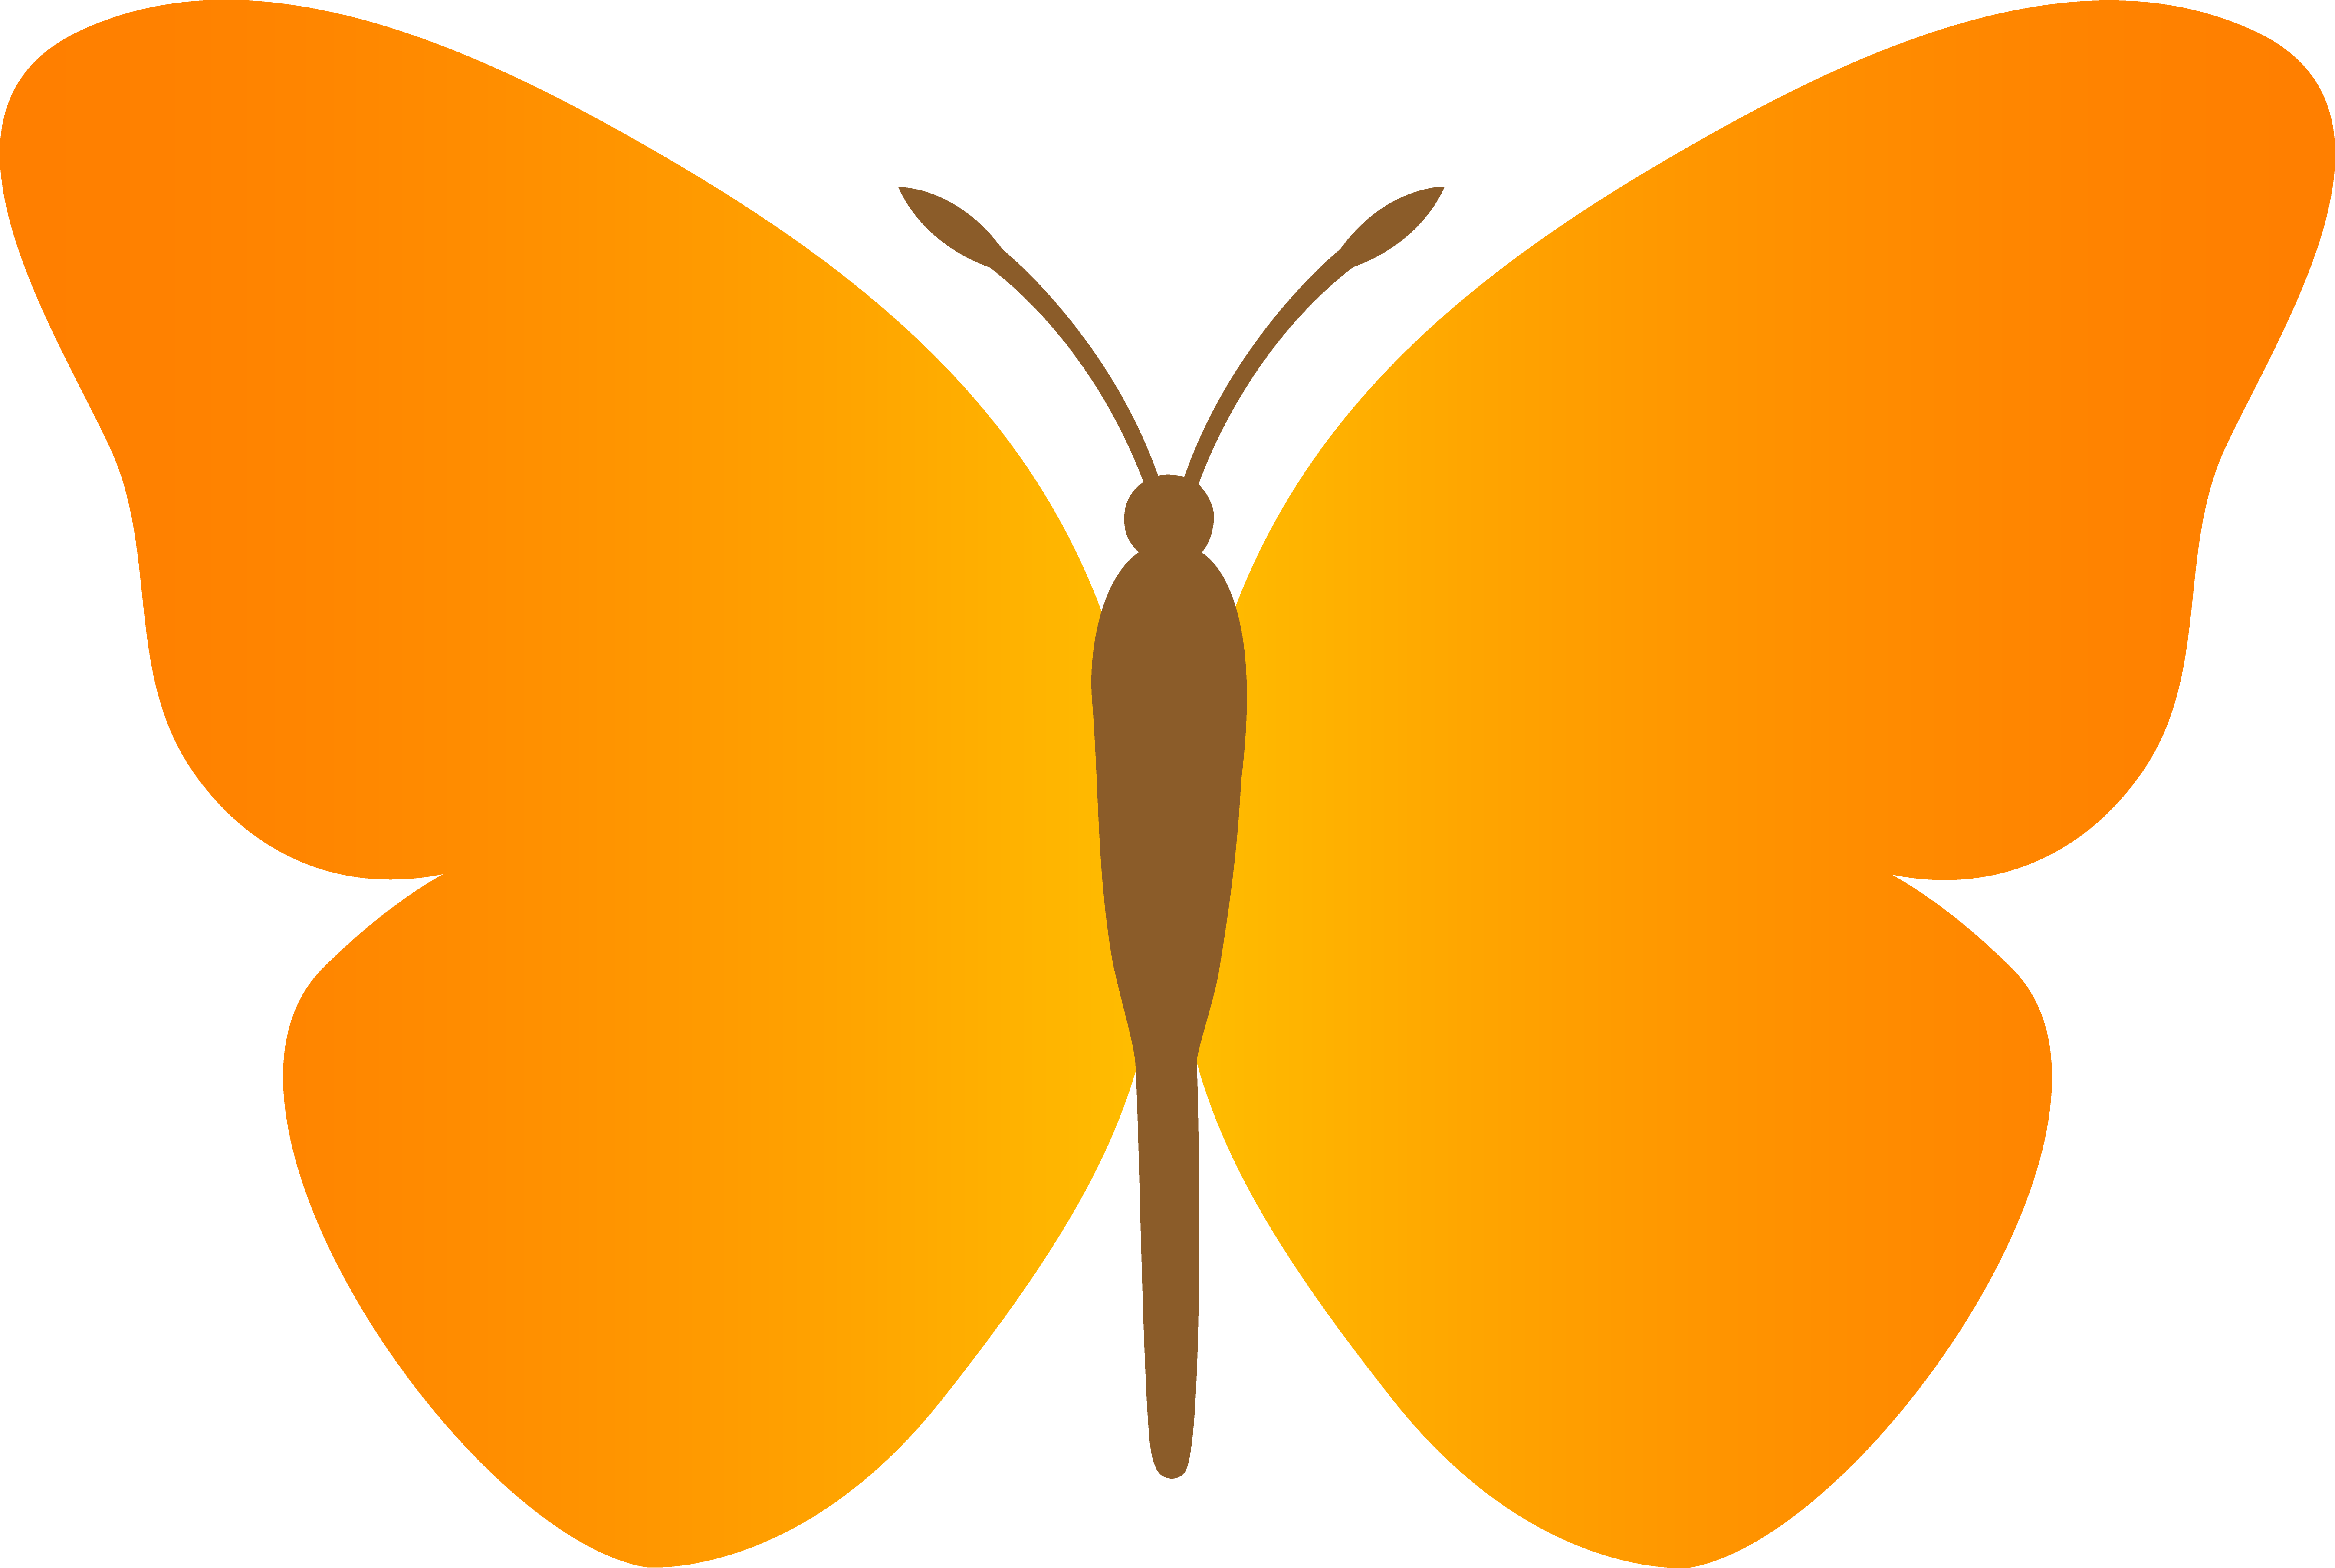 Sunny clipart blue. Simple orange butterfly free